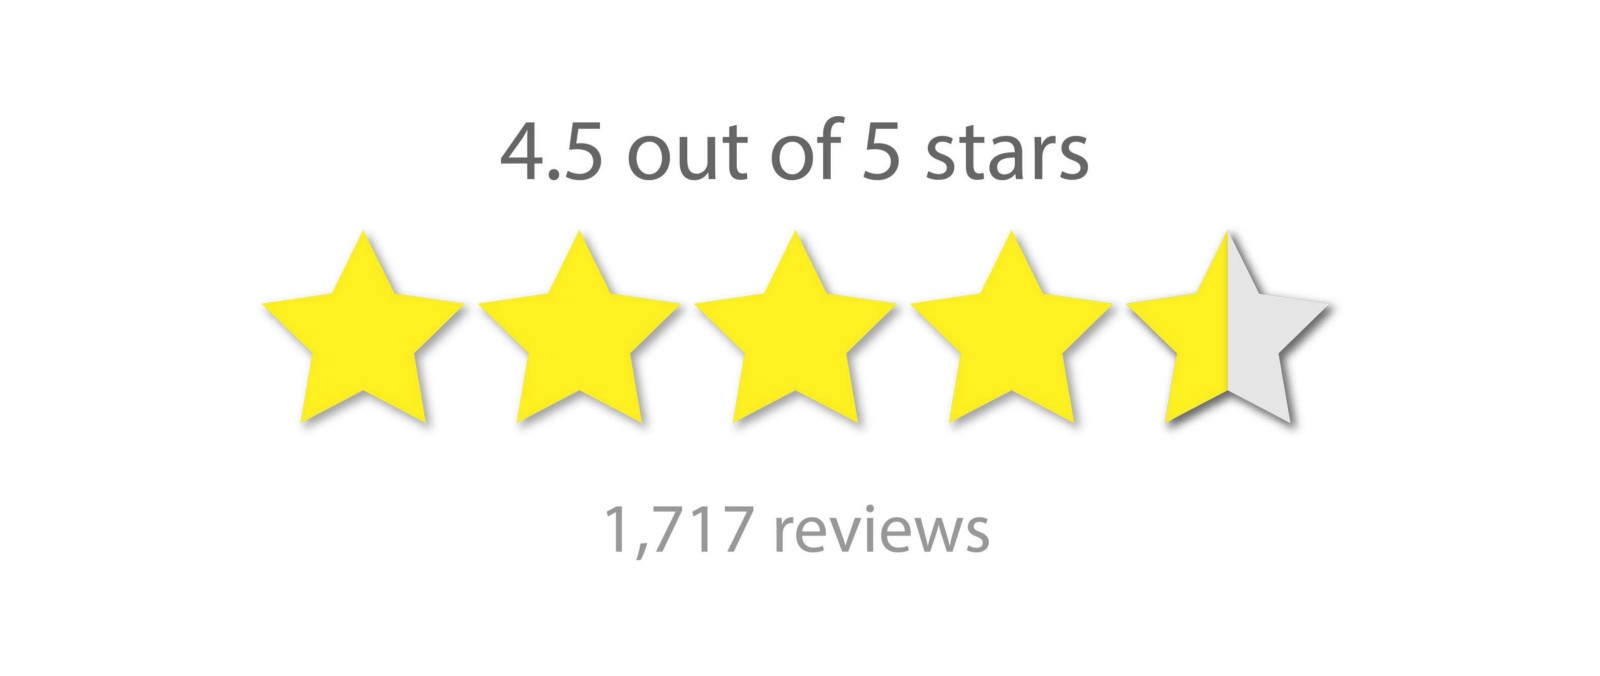 How to Respond To Negative Reviews On Google Play Store or Apple App